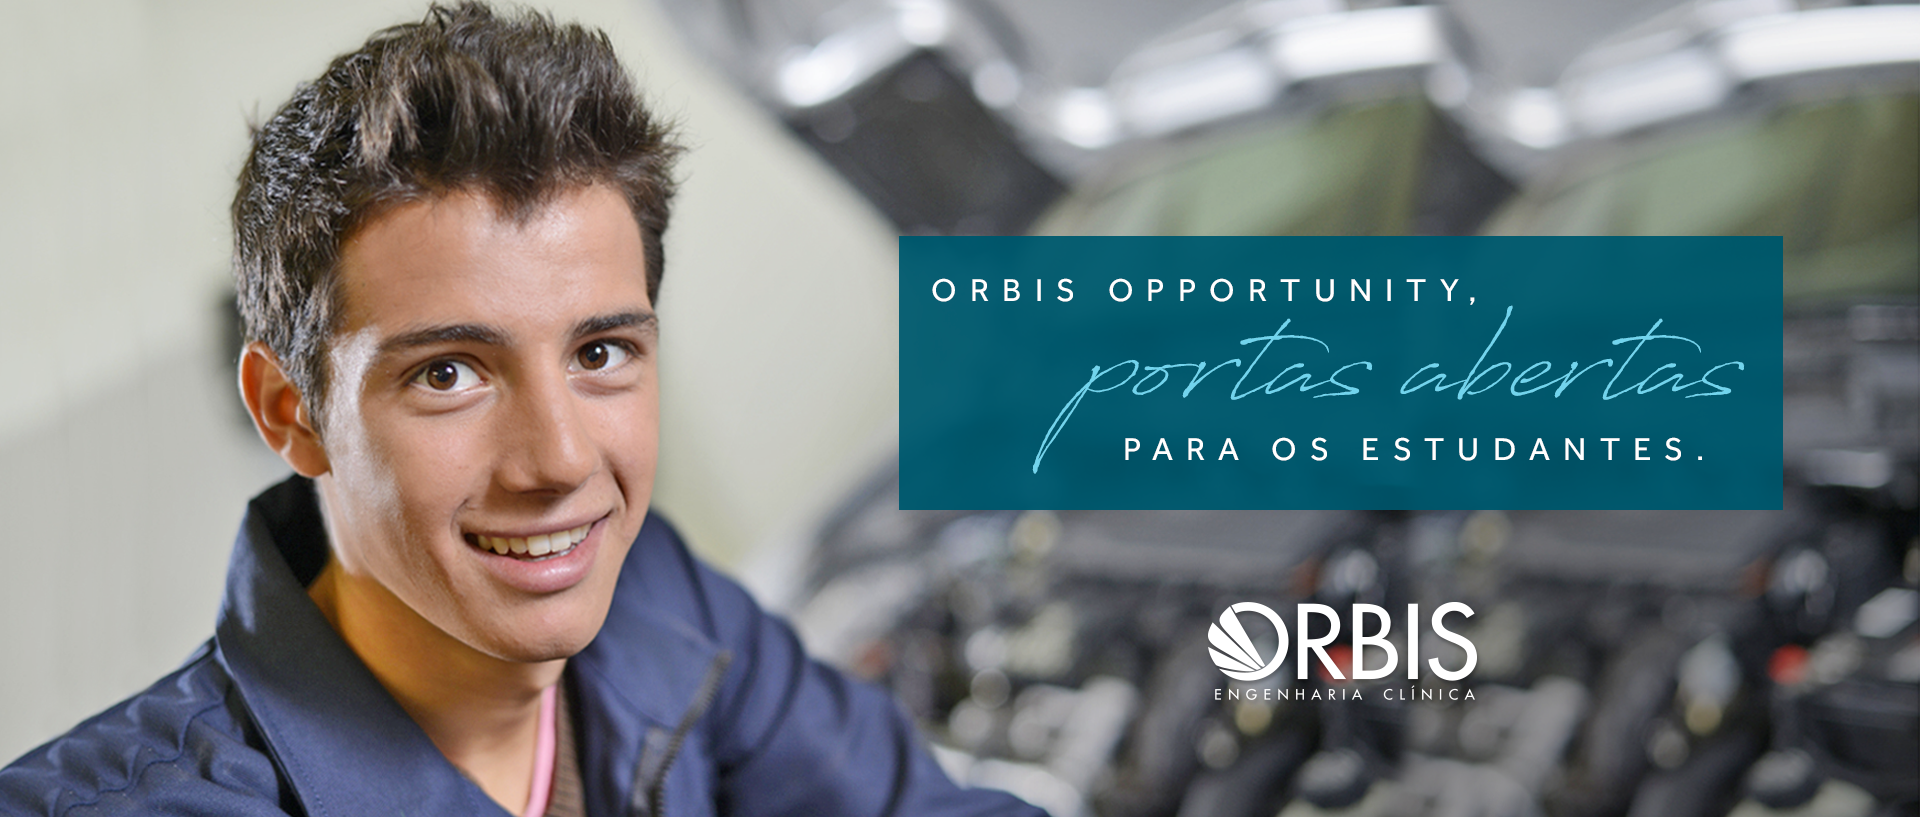 Banner-Site-Orbis-Opportunity